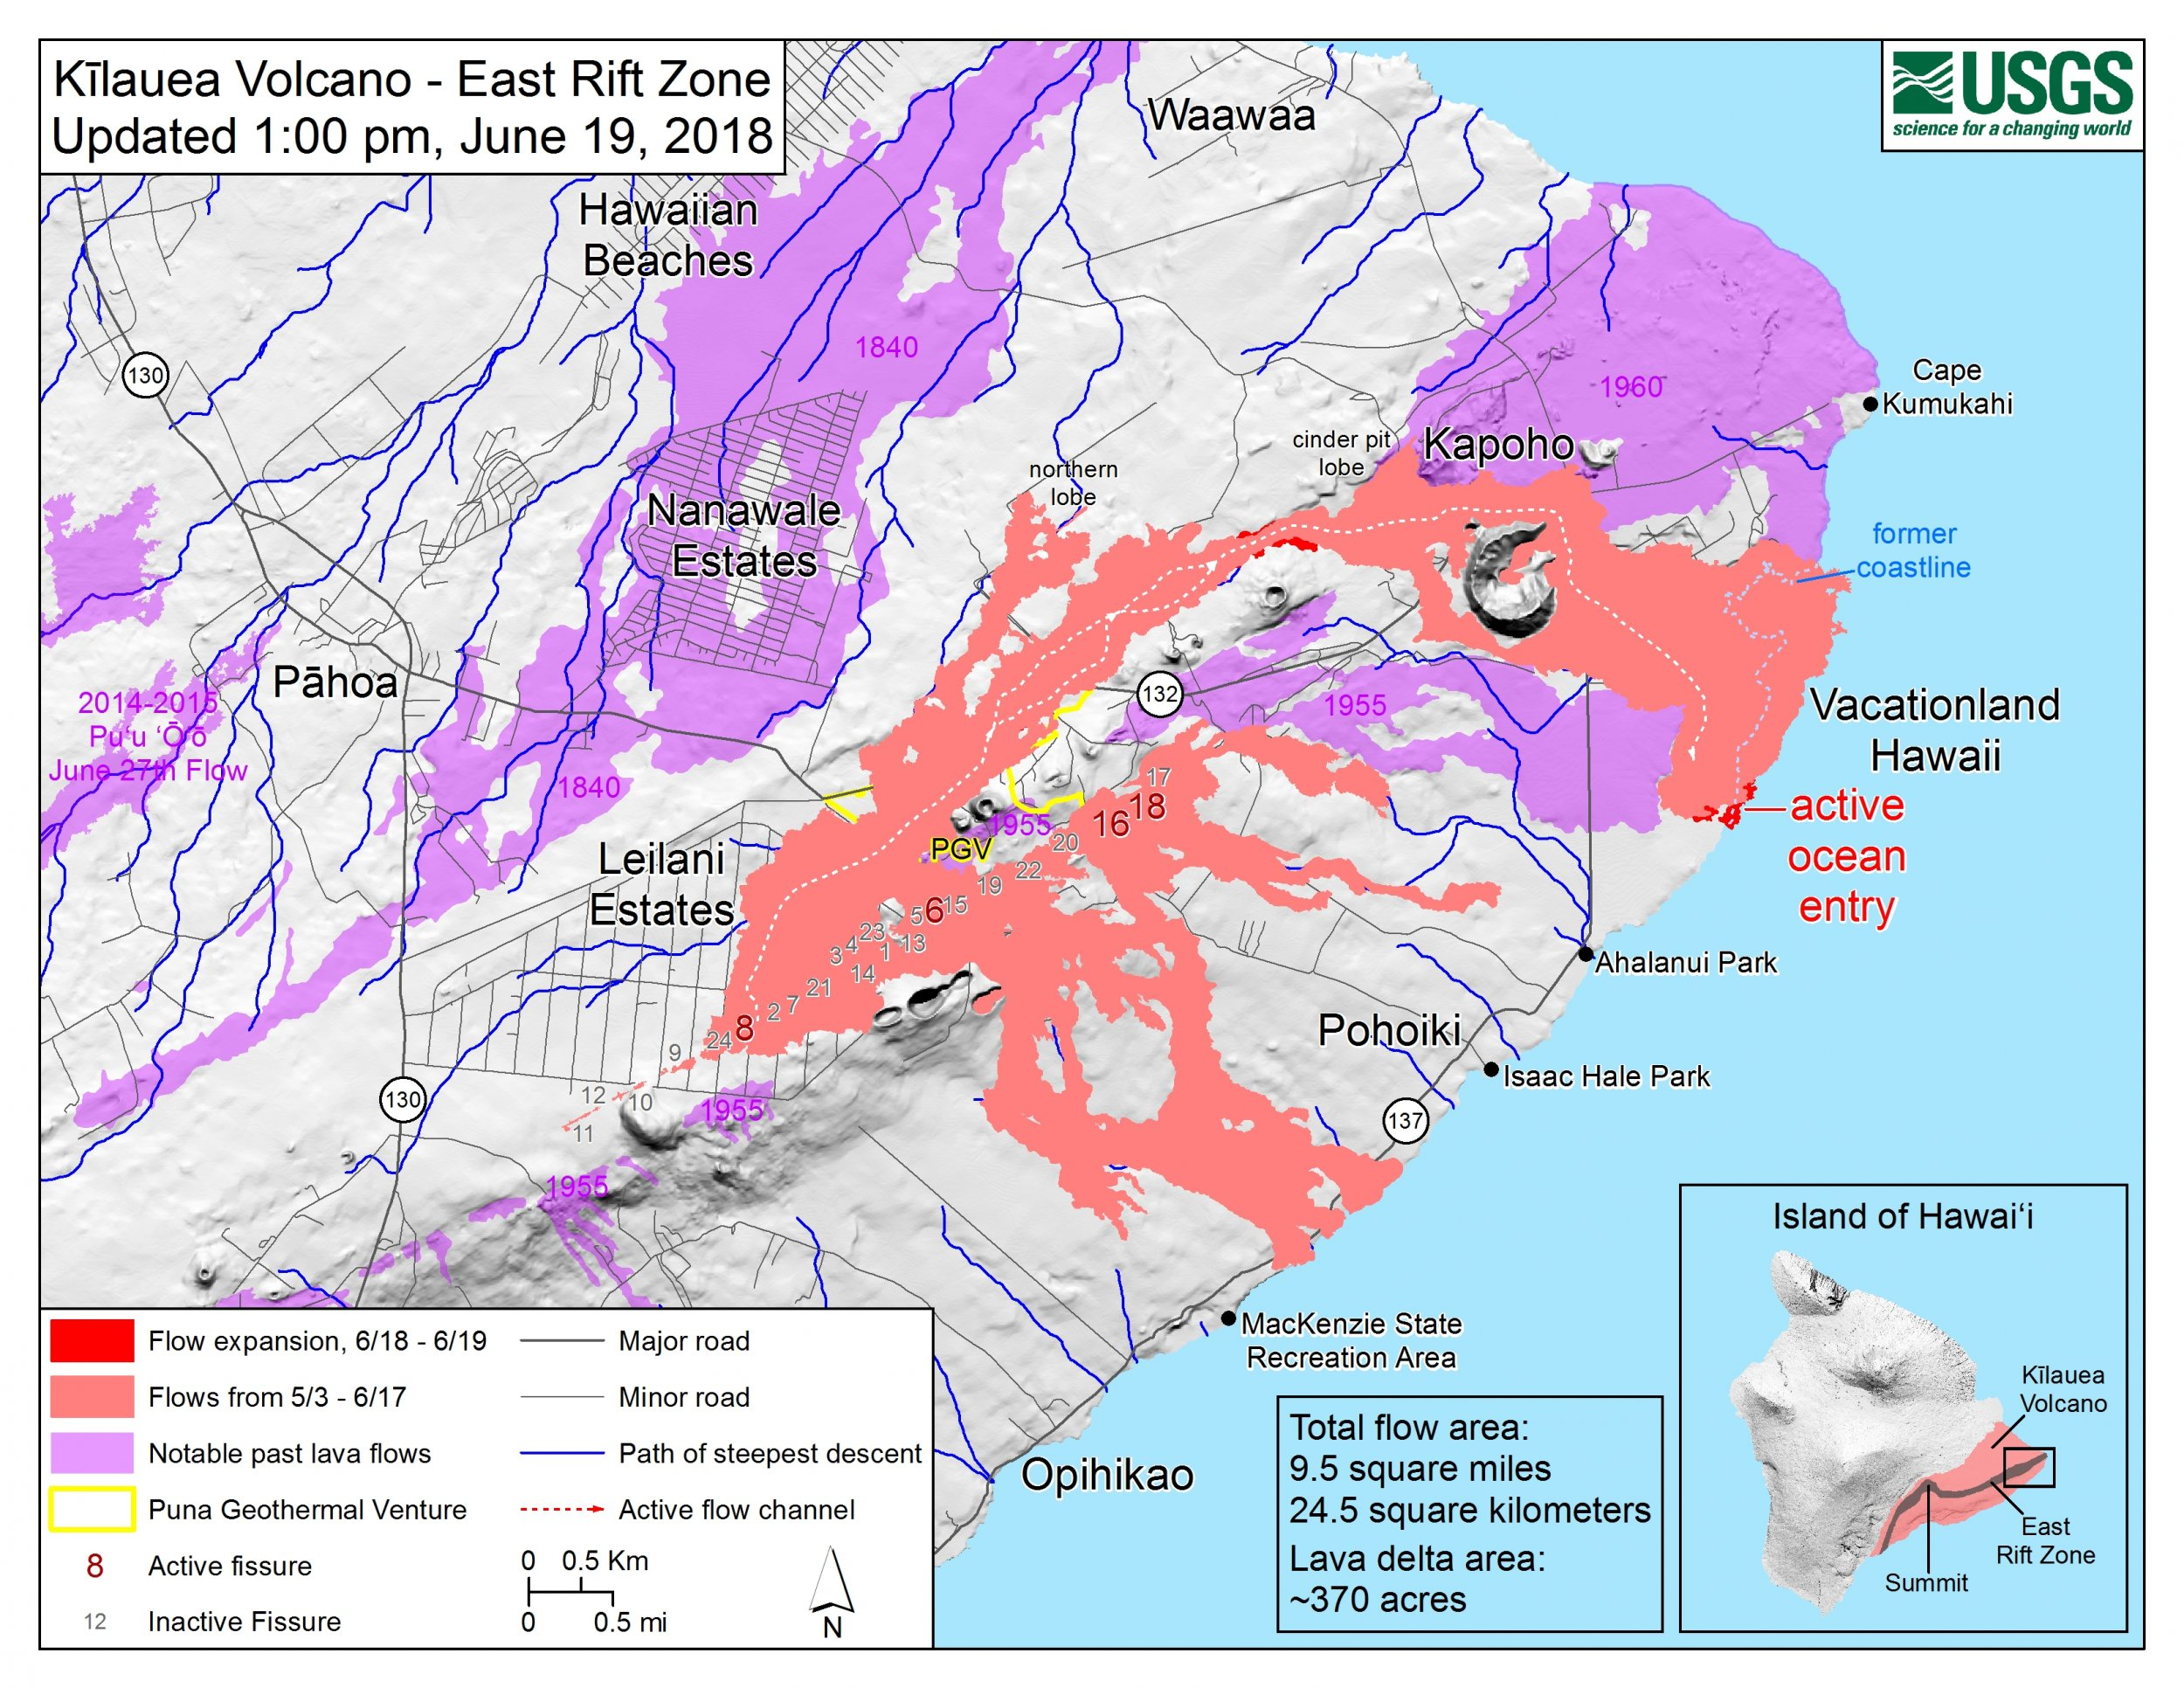 Hawaii Kilauea Volcano Update: USGS Map, New Fissures, Earthquake ...